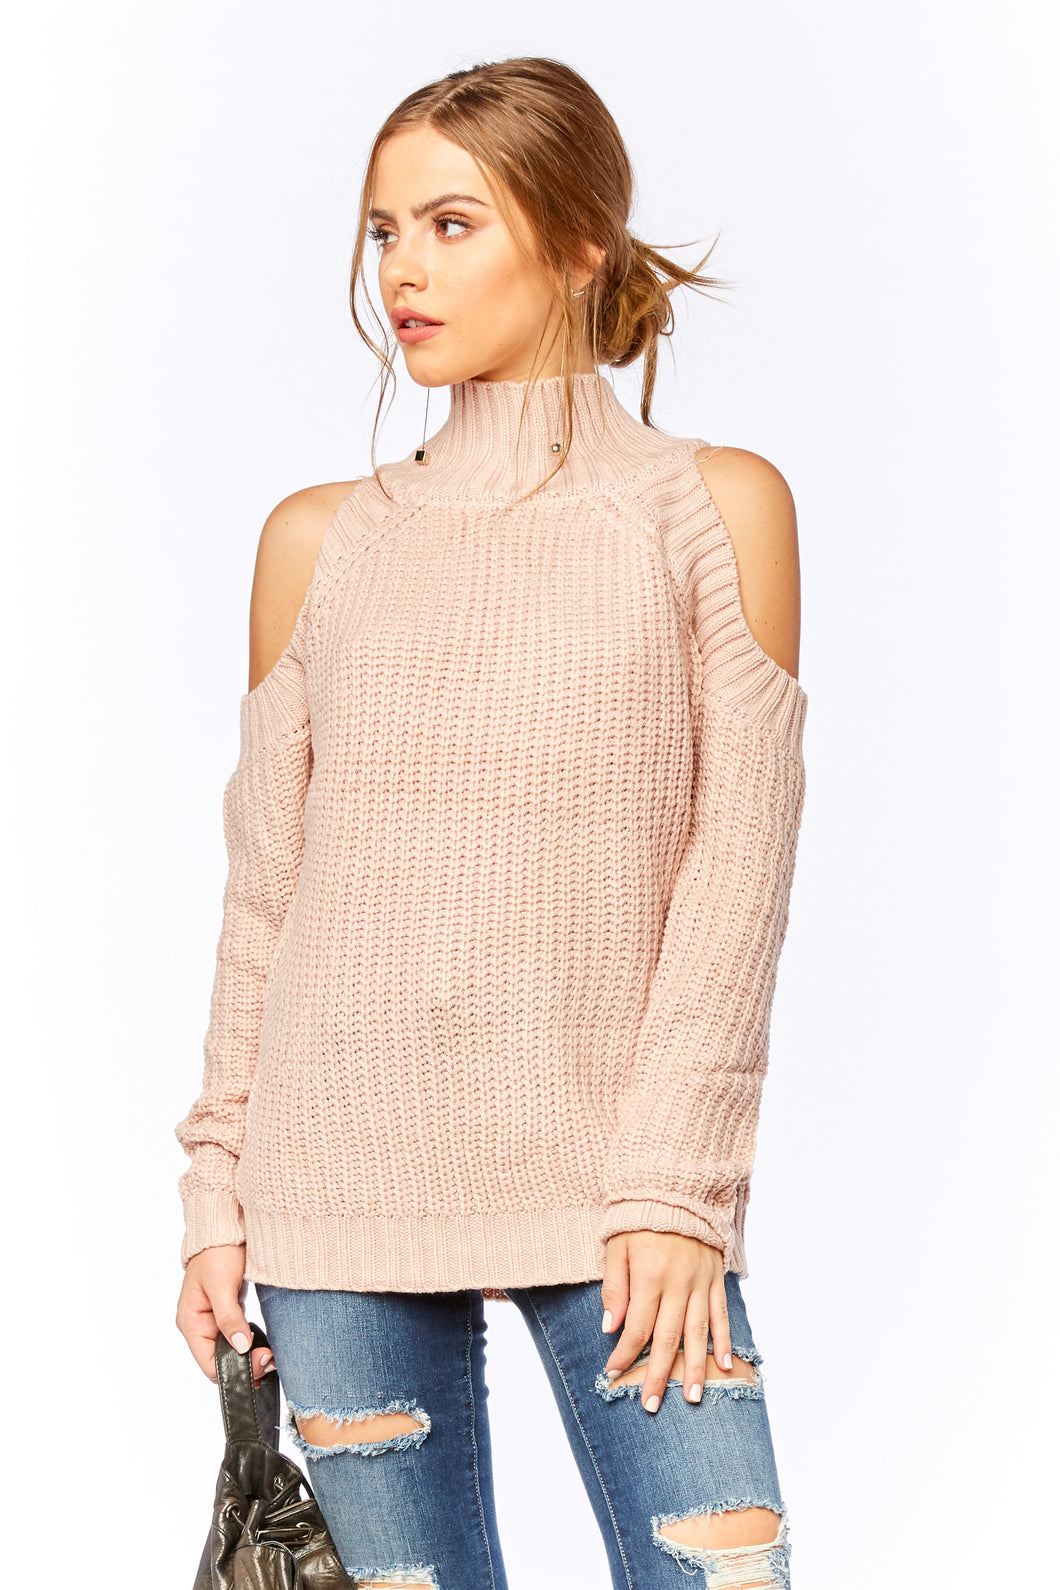 Hide and Seek Sweater - HoneyBum